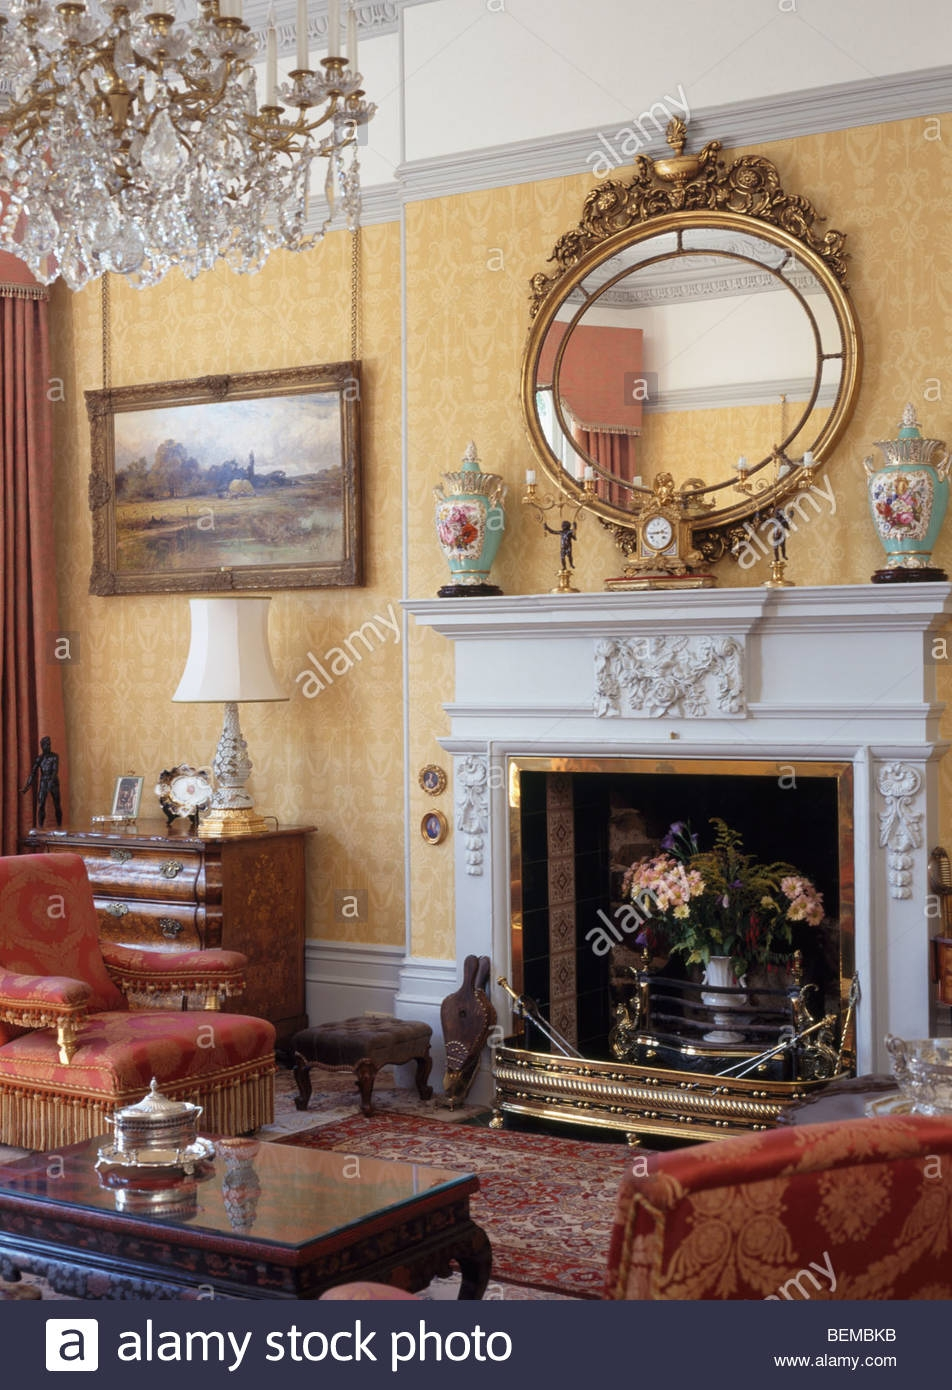 Large Ornate Antique Gilt Mirror Above Beige Velvet Sofa In Living Within Ornate Gilt Mirrors (Image 10 of 15)